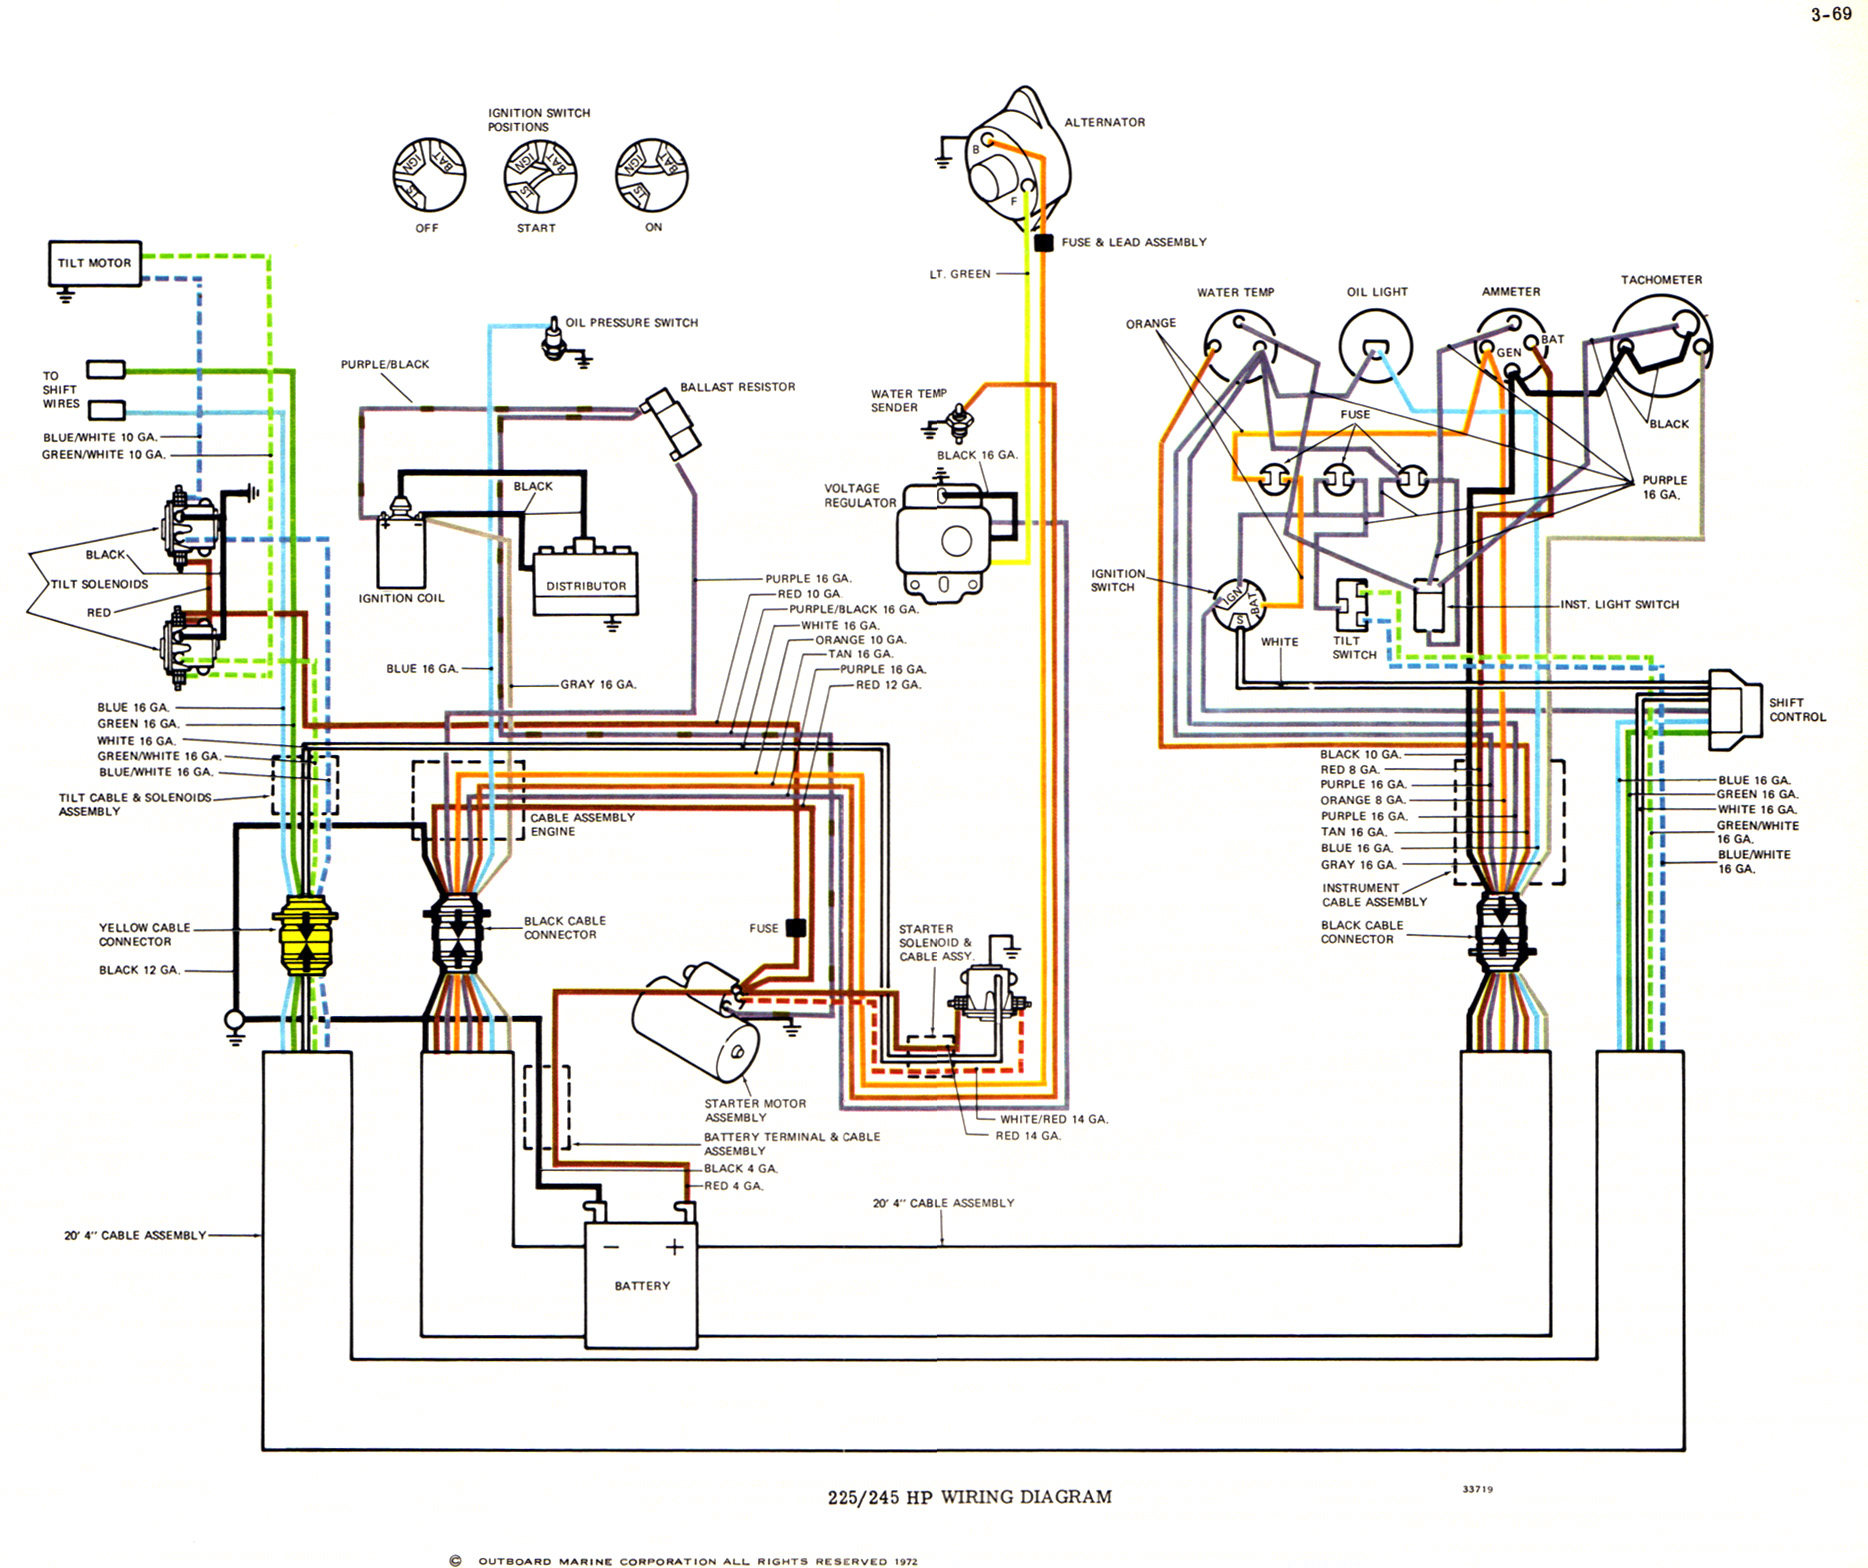 73_OMC_V8_all_big tohatsu tachometer wiring diagram sun super tachometer ii wiring honda outboard wiring harness at pacquiaovsvargaslive.co